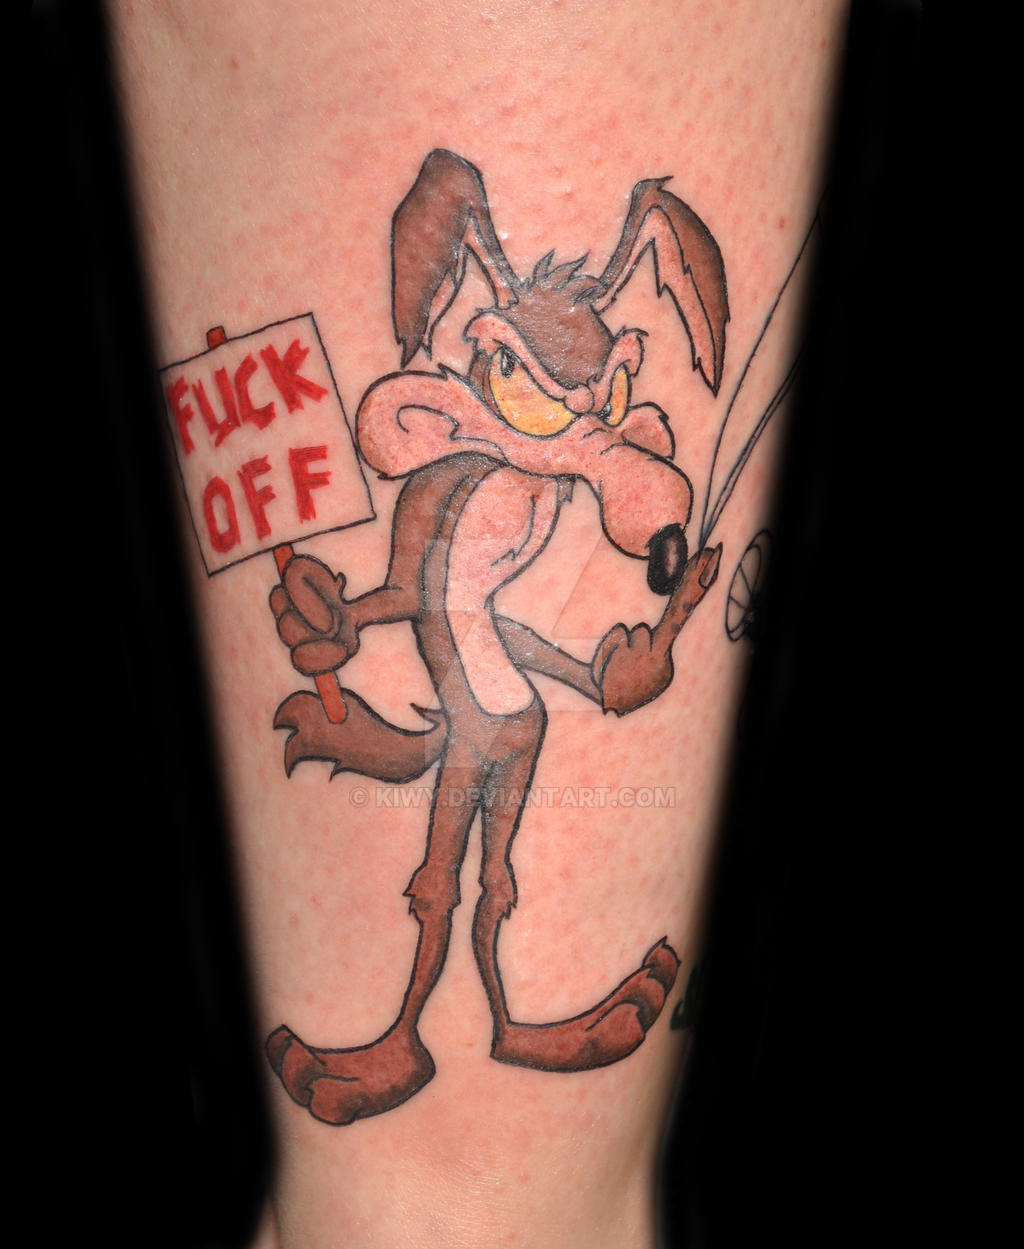 A Message From Wile E. Coyote Tattoo By Kiwy On DeviantArt